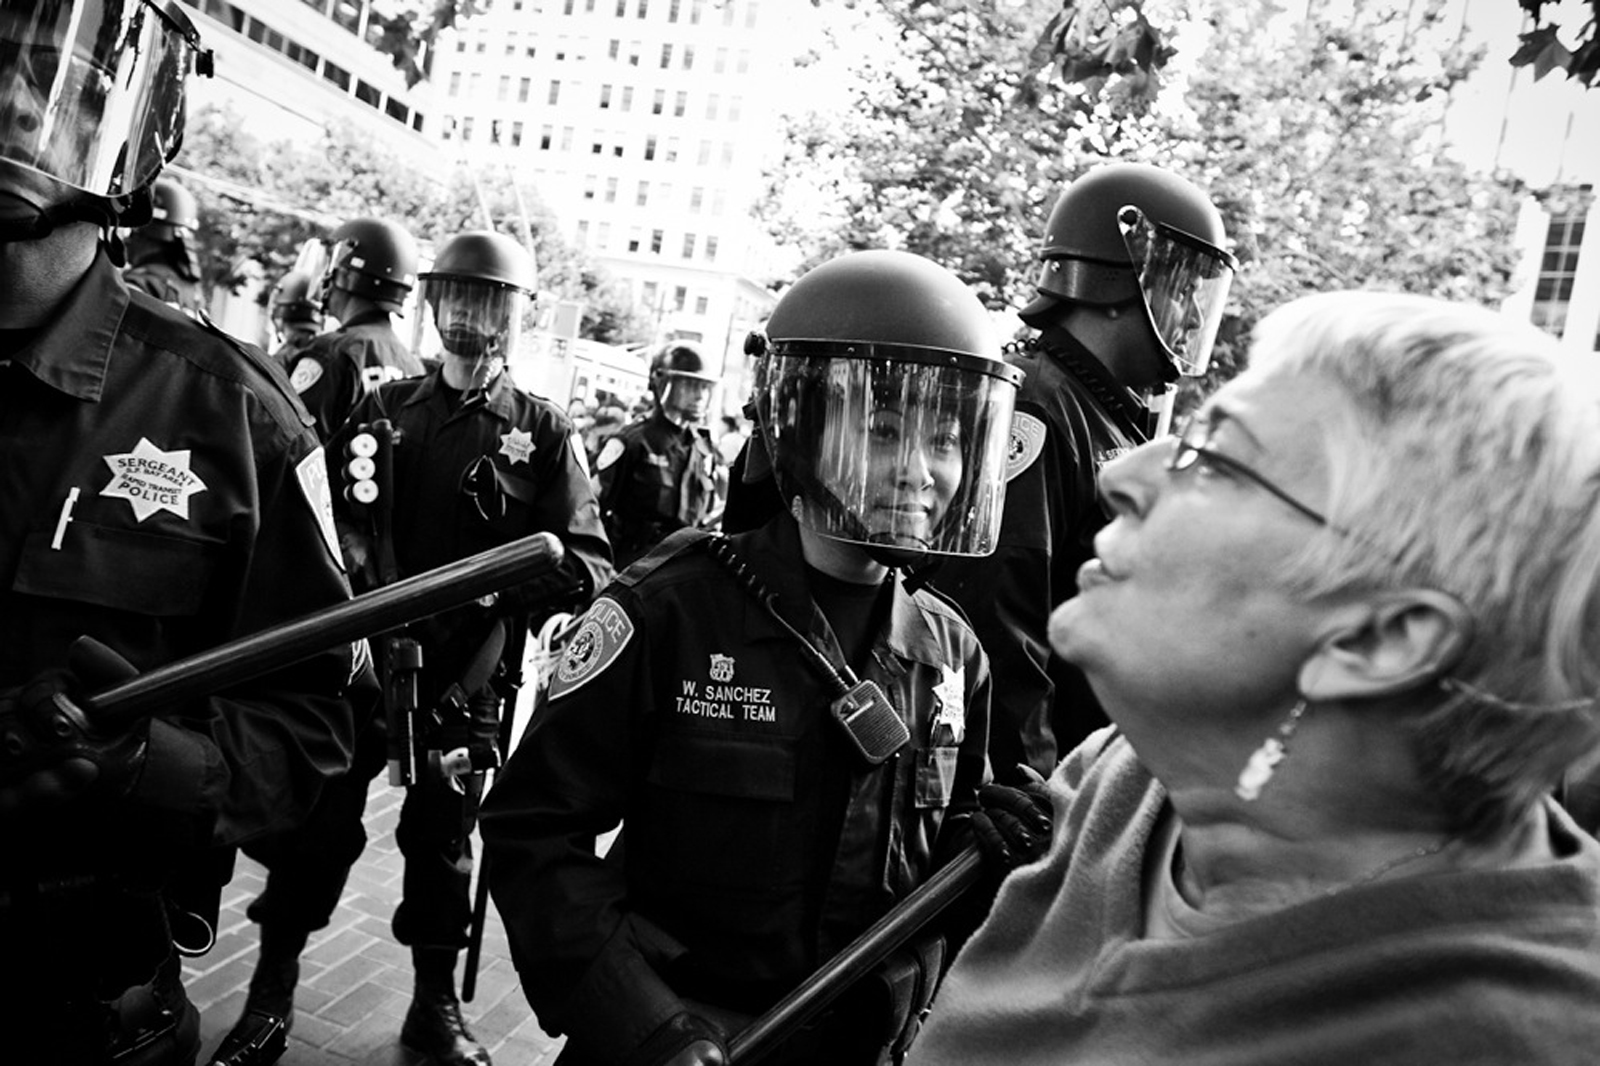 A protester shouts at BART police during a demonstration outside the Civic Center BART station, August 15, 2011.